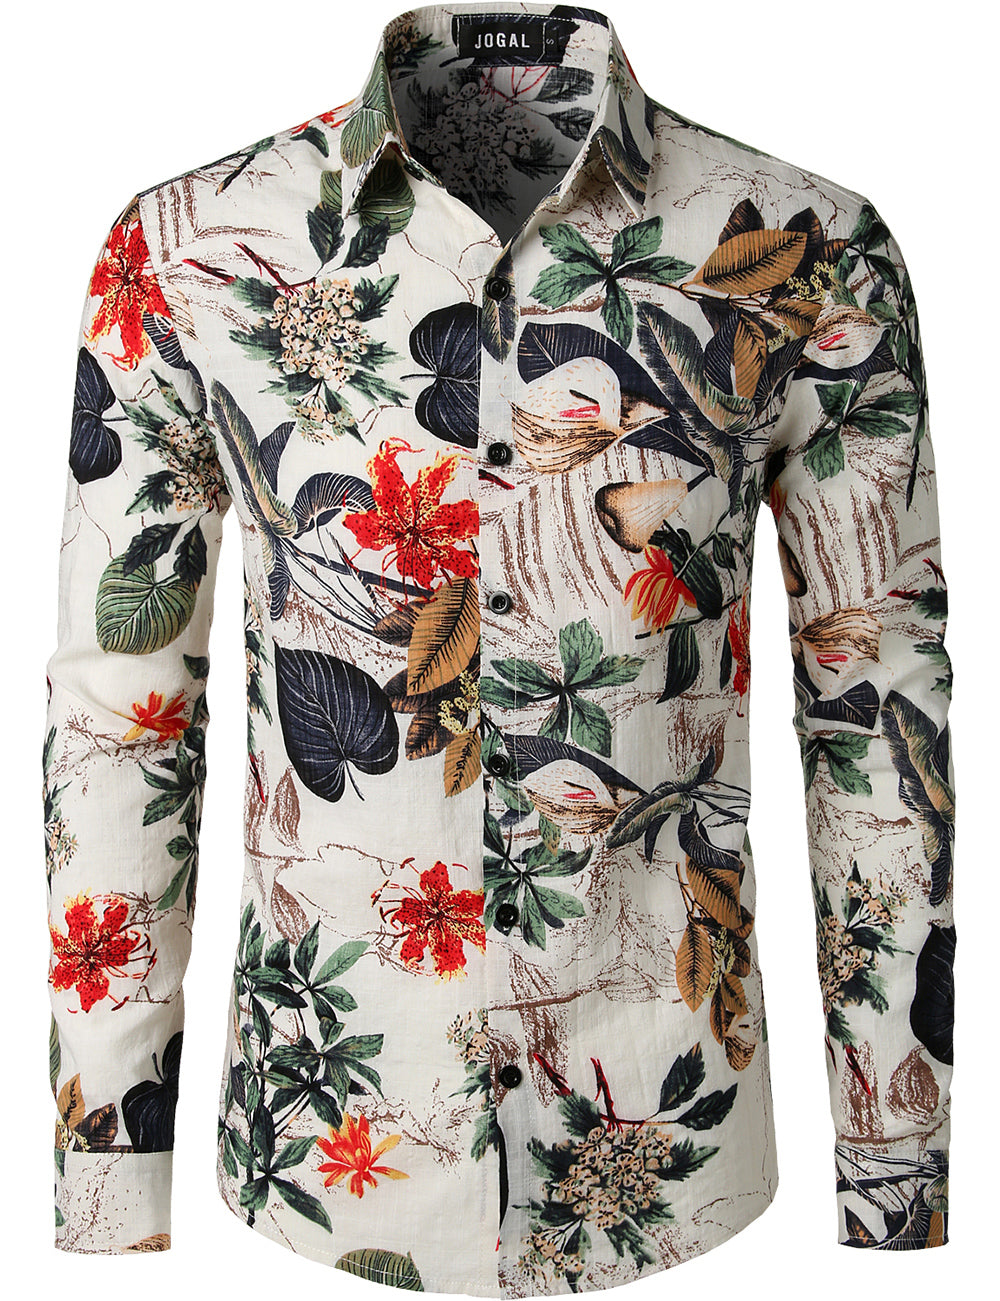 JOGAL Men's Flower Casual Button Down Long Sleeve Hawaiian Shirt(White)